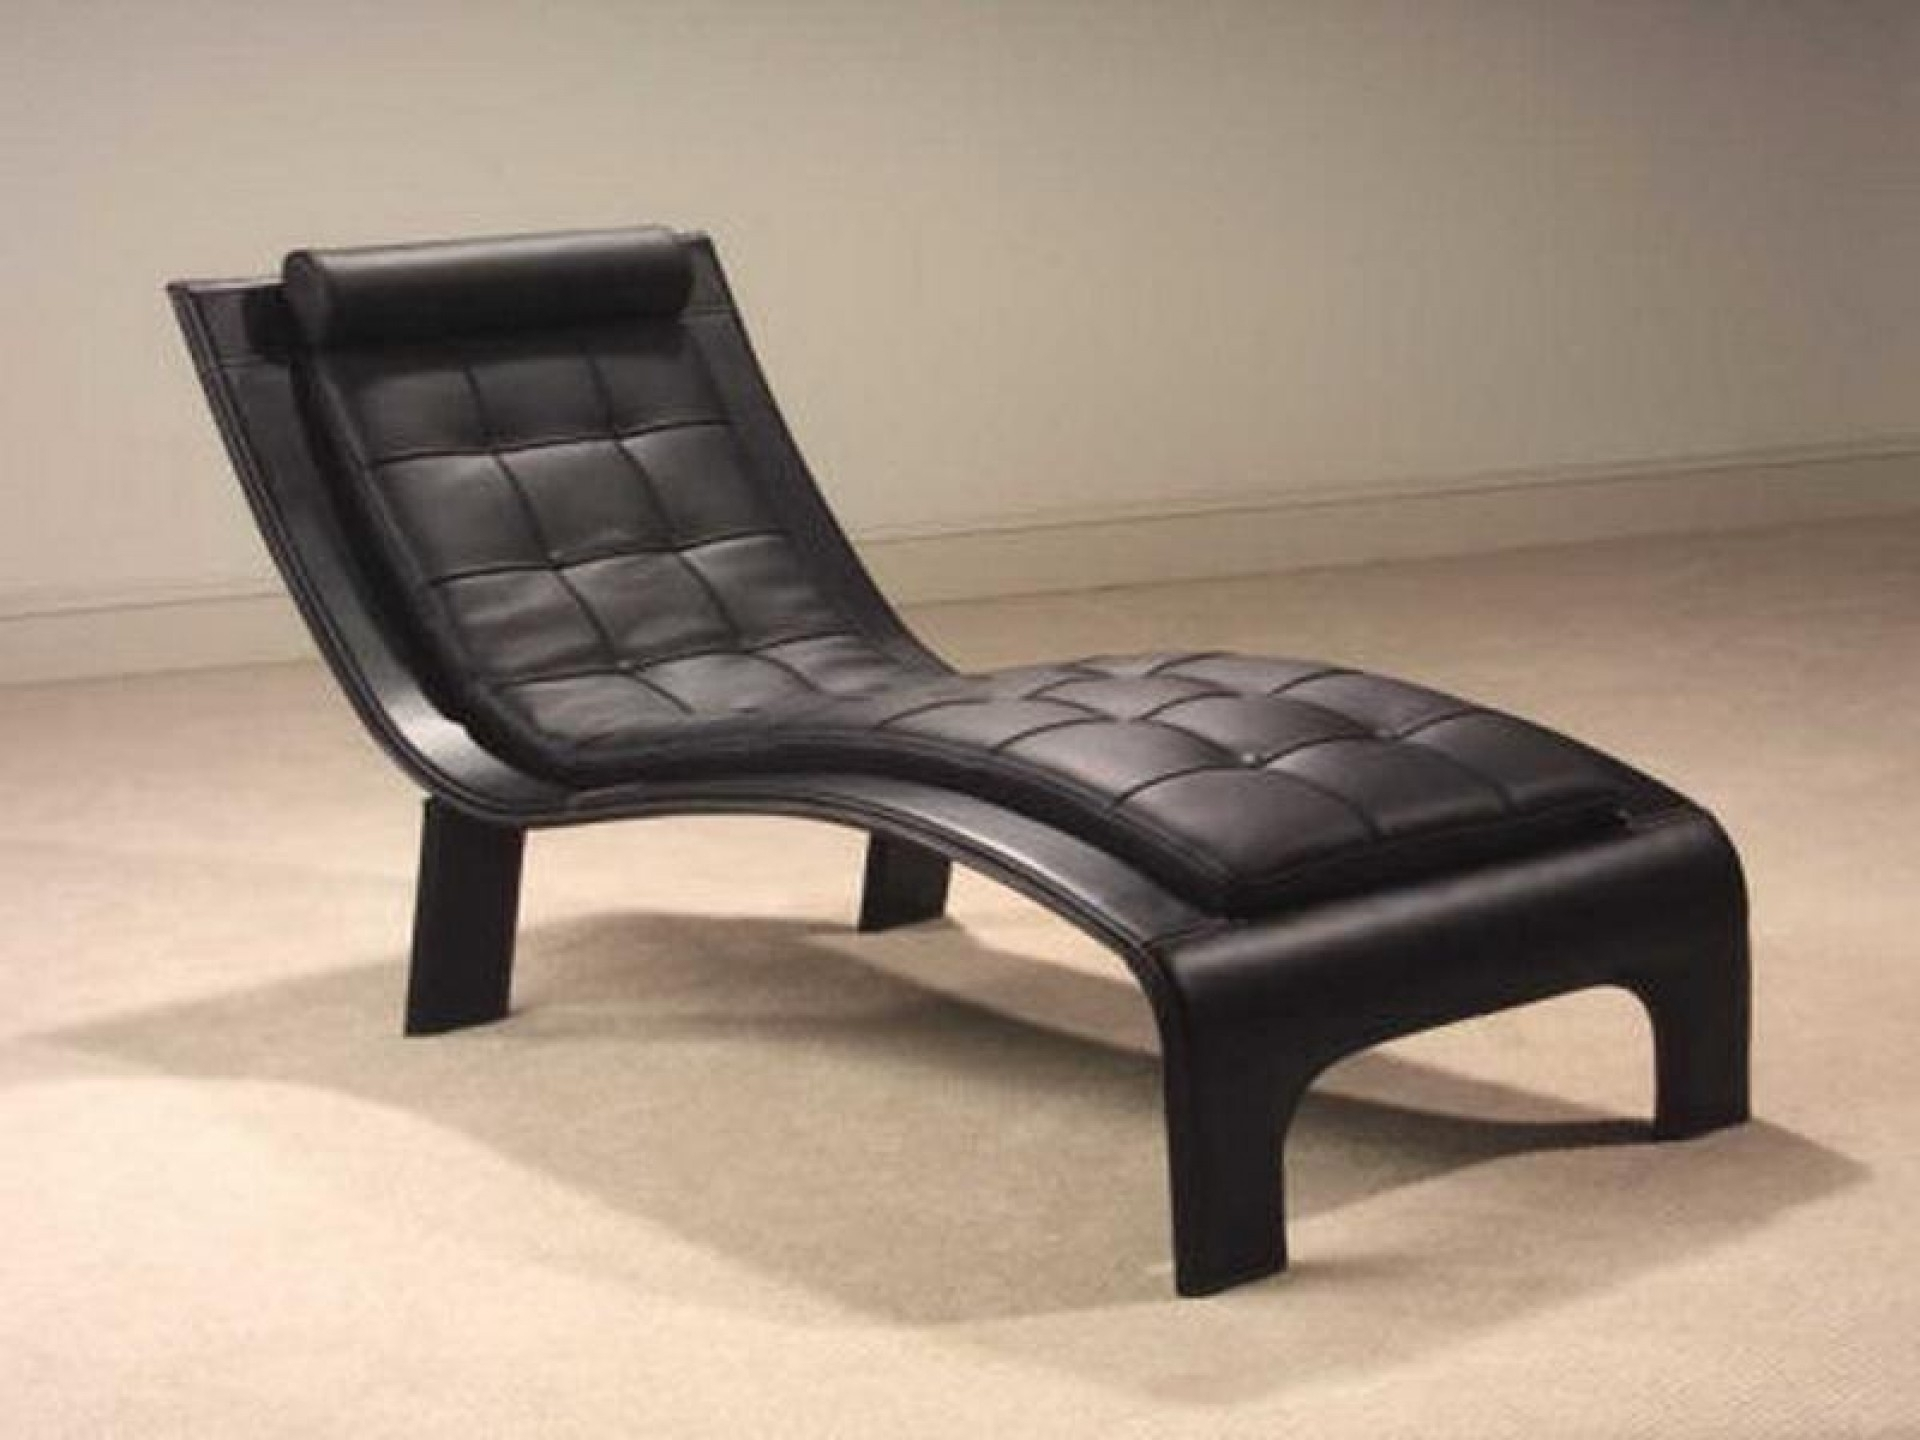 Most Popular Black Leather Chaise Lounge Chairs • Lounge Chairs Ideas Regarding Black Leather Chaises (View 12 of 15)